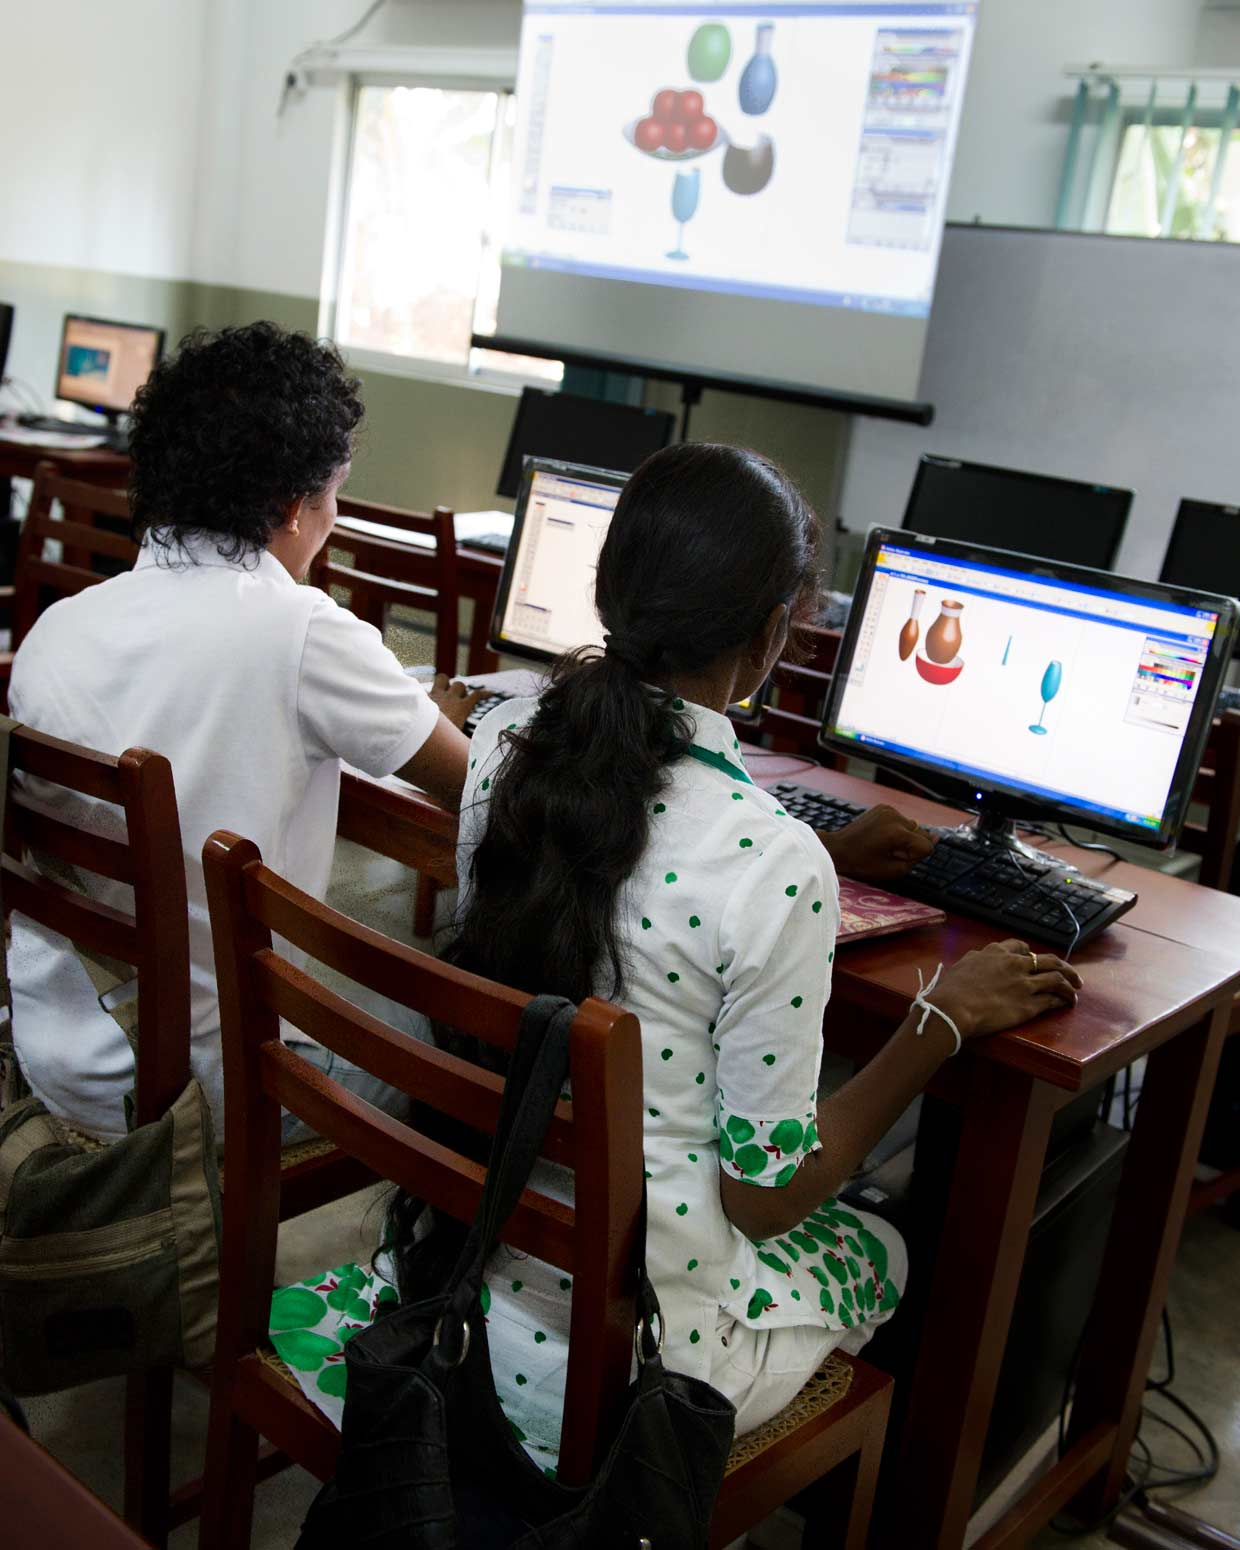 Students at the Curtis Graphic Design Centre. Established in 2011 at the MJF Foundation Centre, Moratuwa to provide free training in graphic design for underprivileged youth, nearly fifty students graduate each year with valuable qualifications.